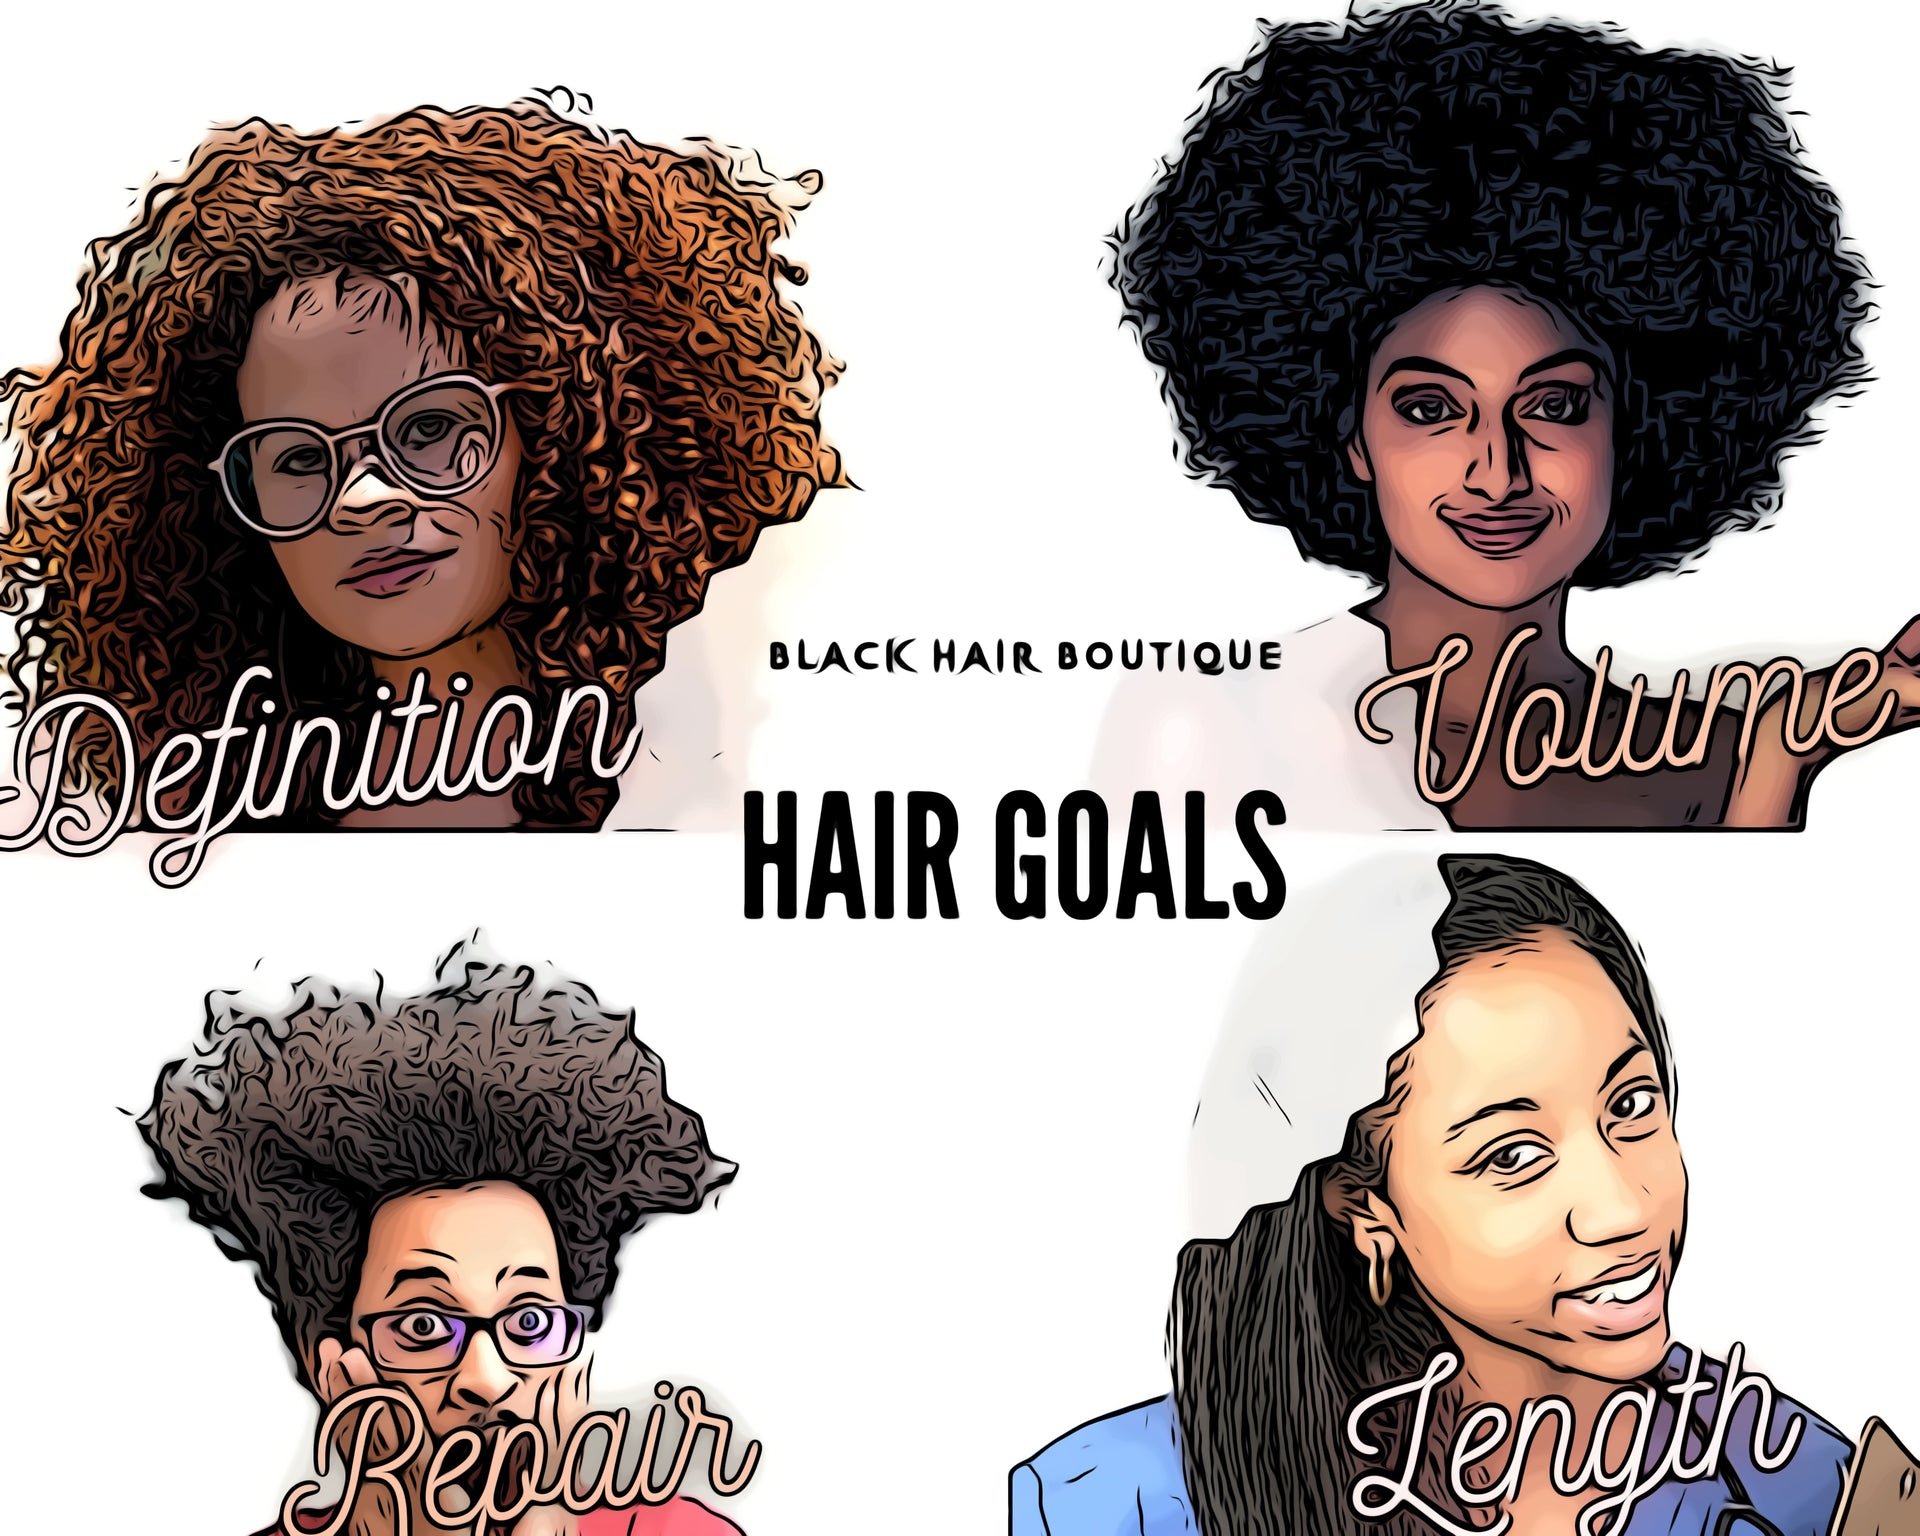 Shop by Hair Goals